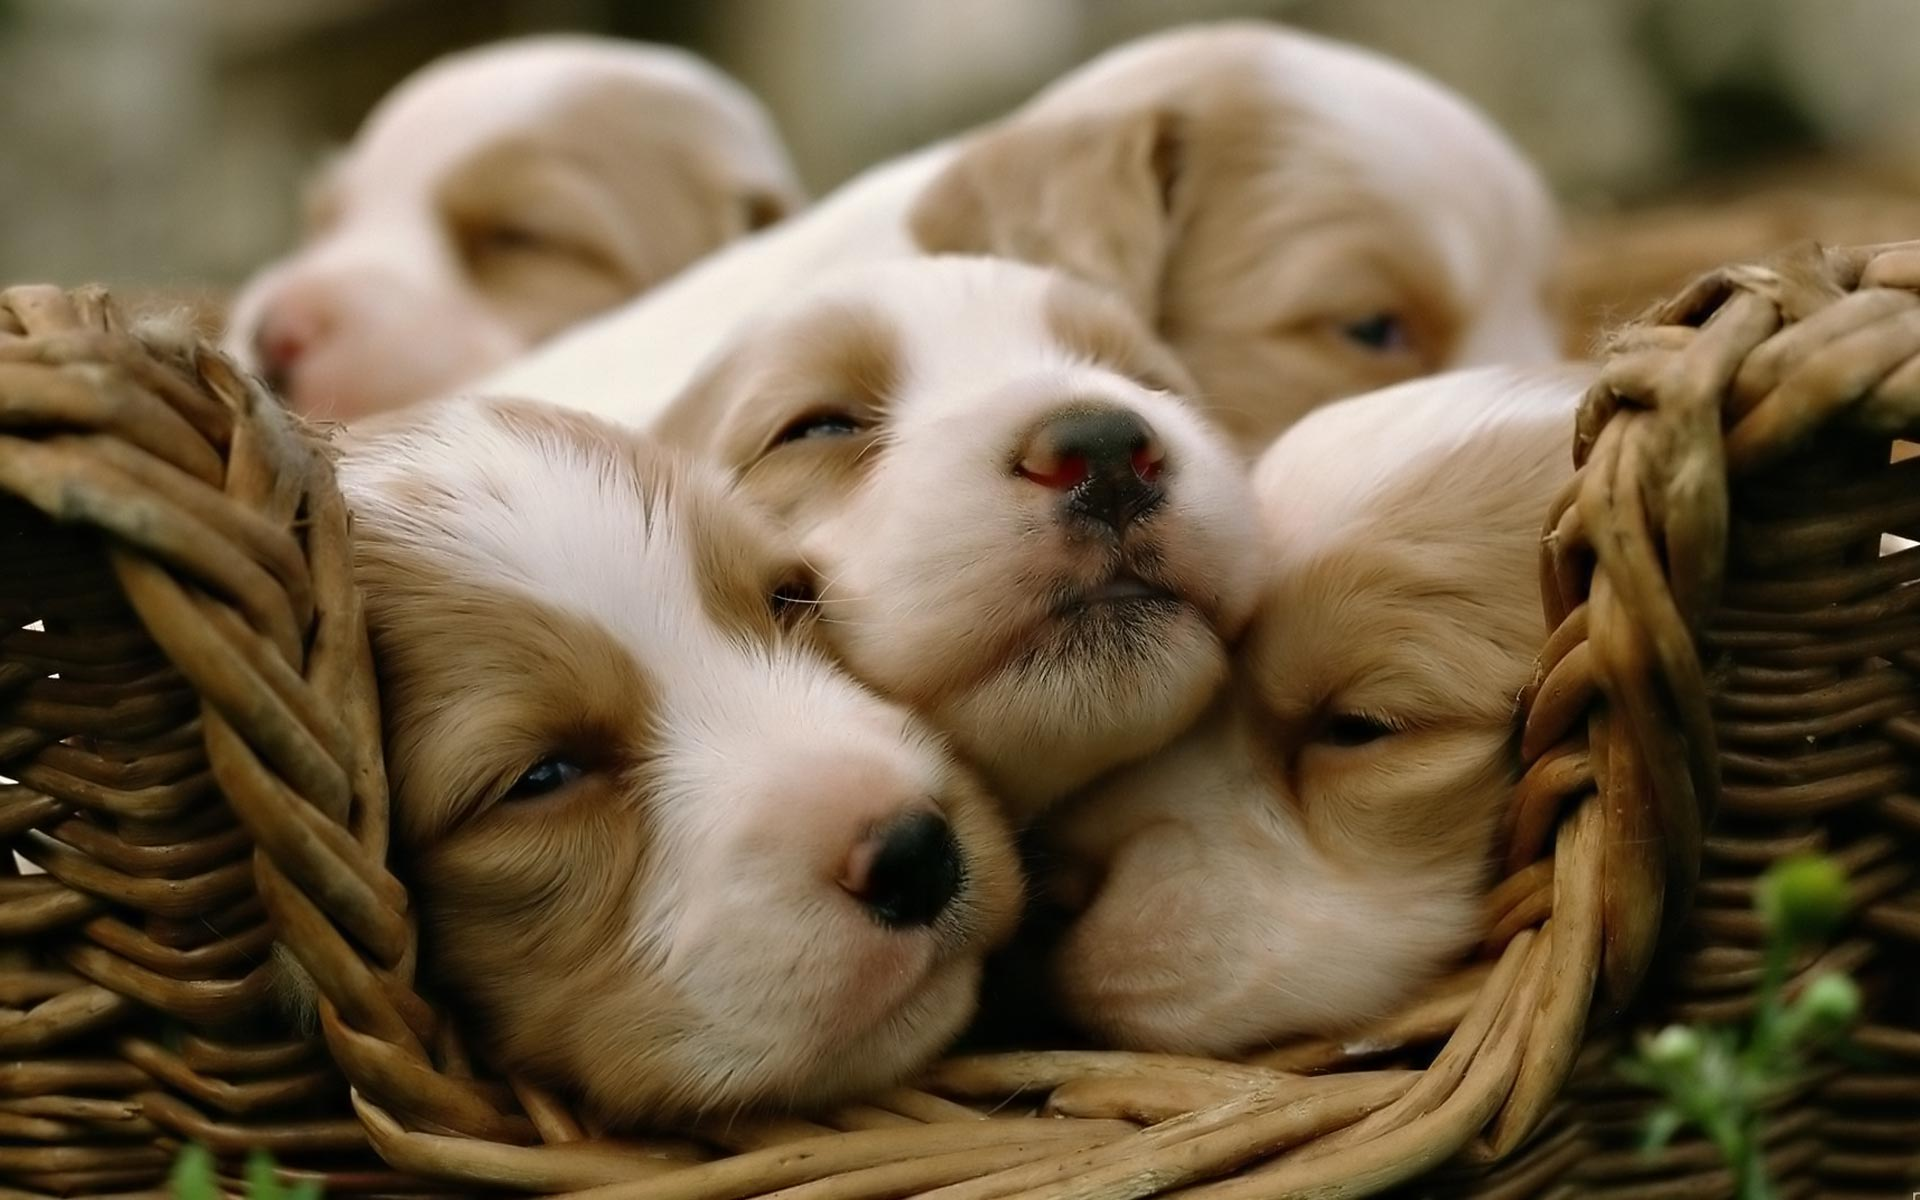 Cute Puppy Wallpaper Desktop 30118 Hd Wallpapers